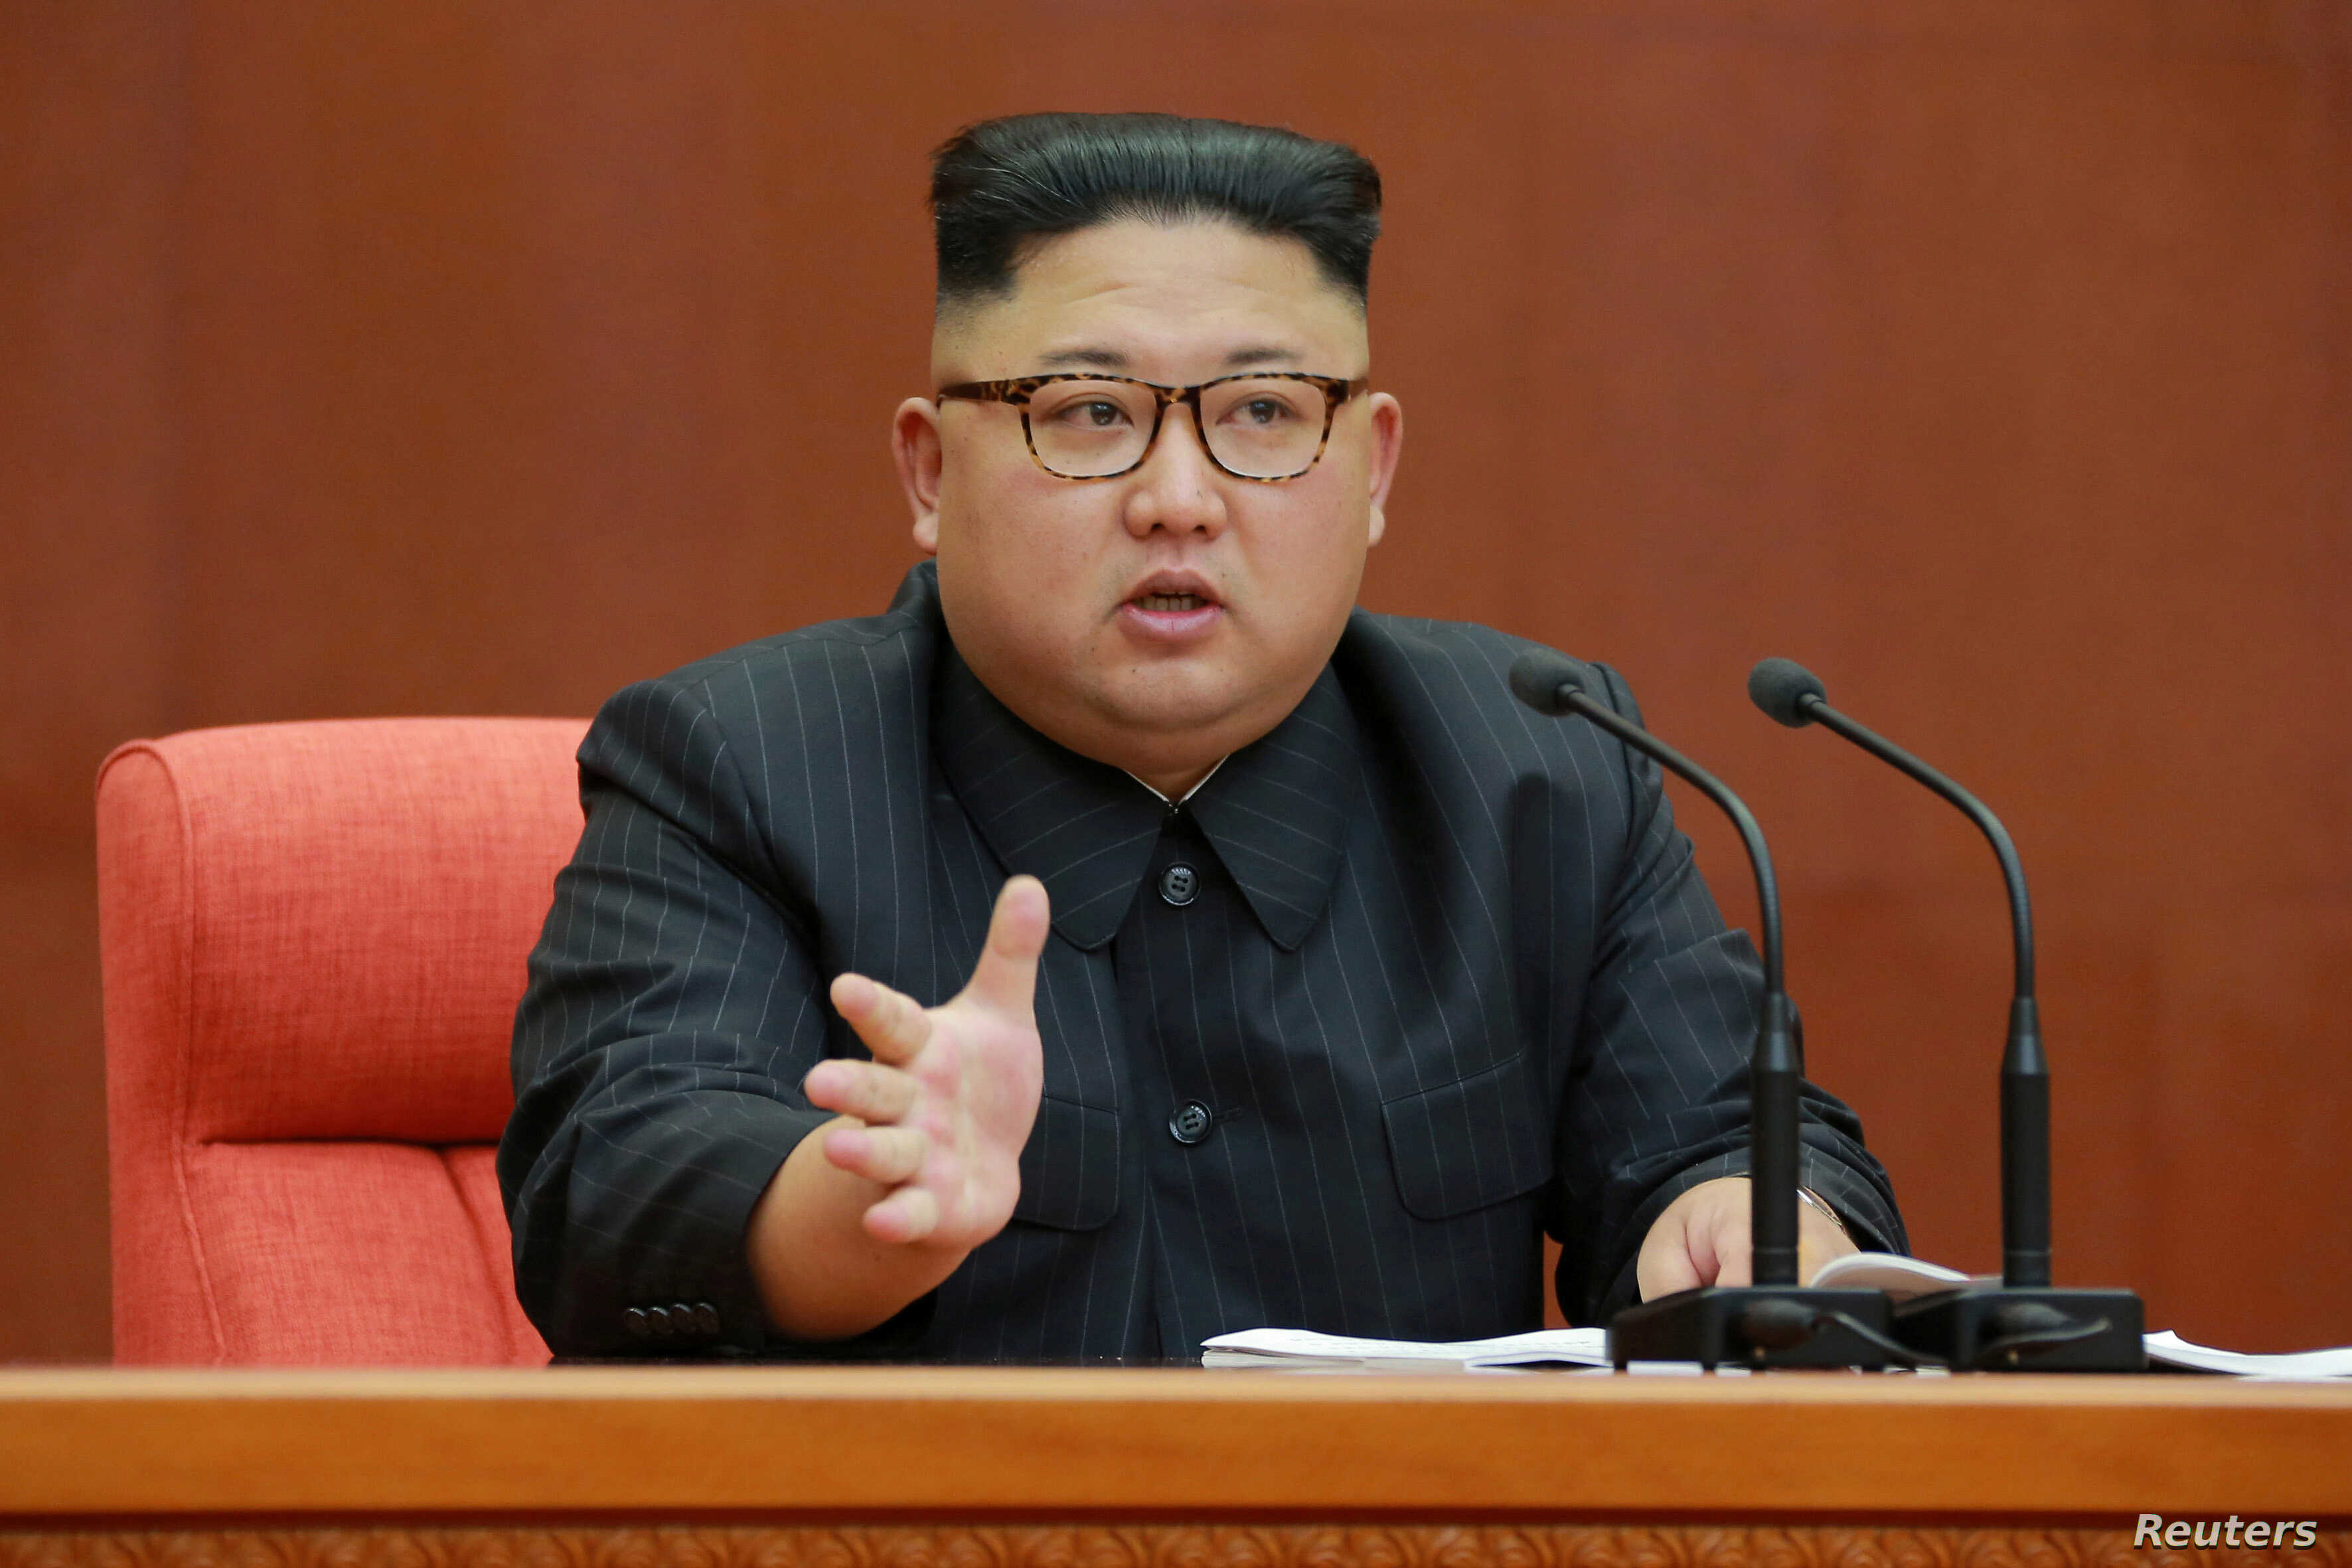 Kim Jong Un speaks during the Second Plenum of the 7th Central Committee of the Workers' Party of Korea (WPK) at the Kumsusan Palace of the Sun, in this undated photo released by North Korea's Korean Central News Agency (KCNA) in Pyongyang, Oct. 8, 2...